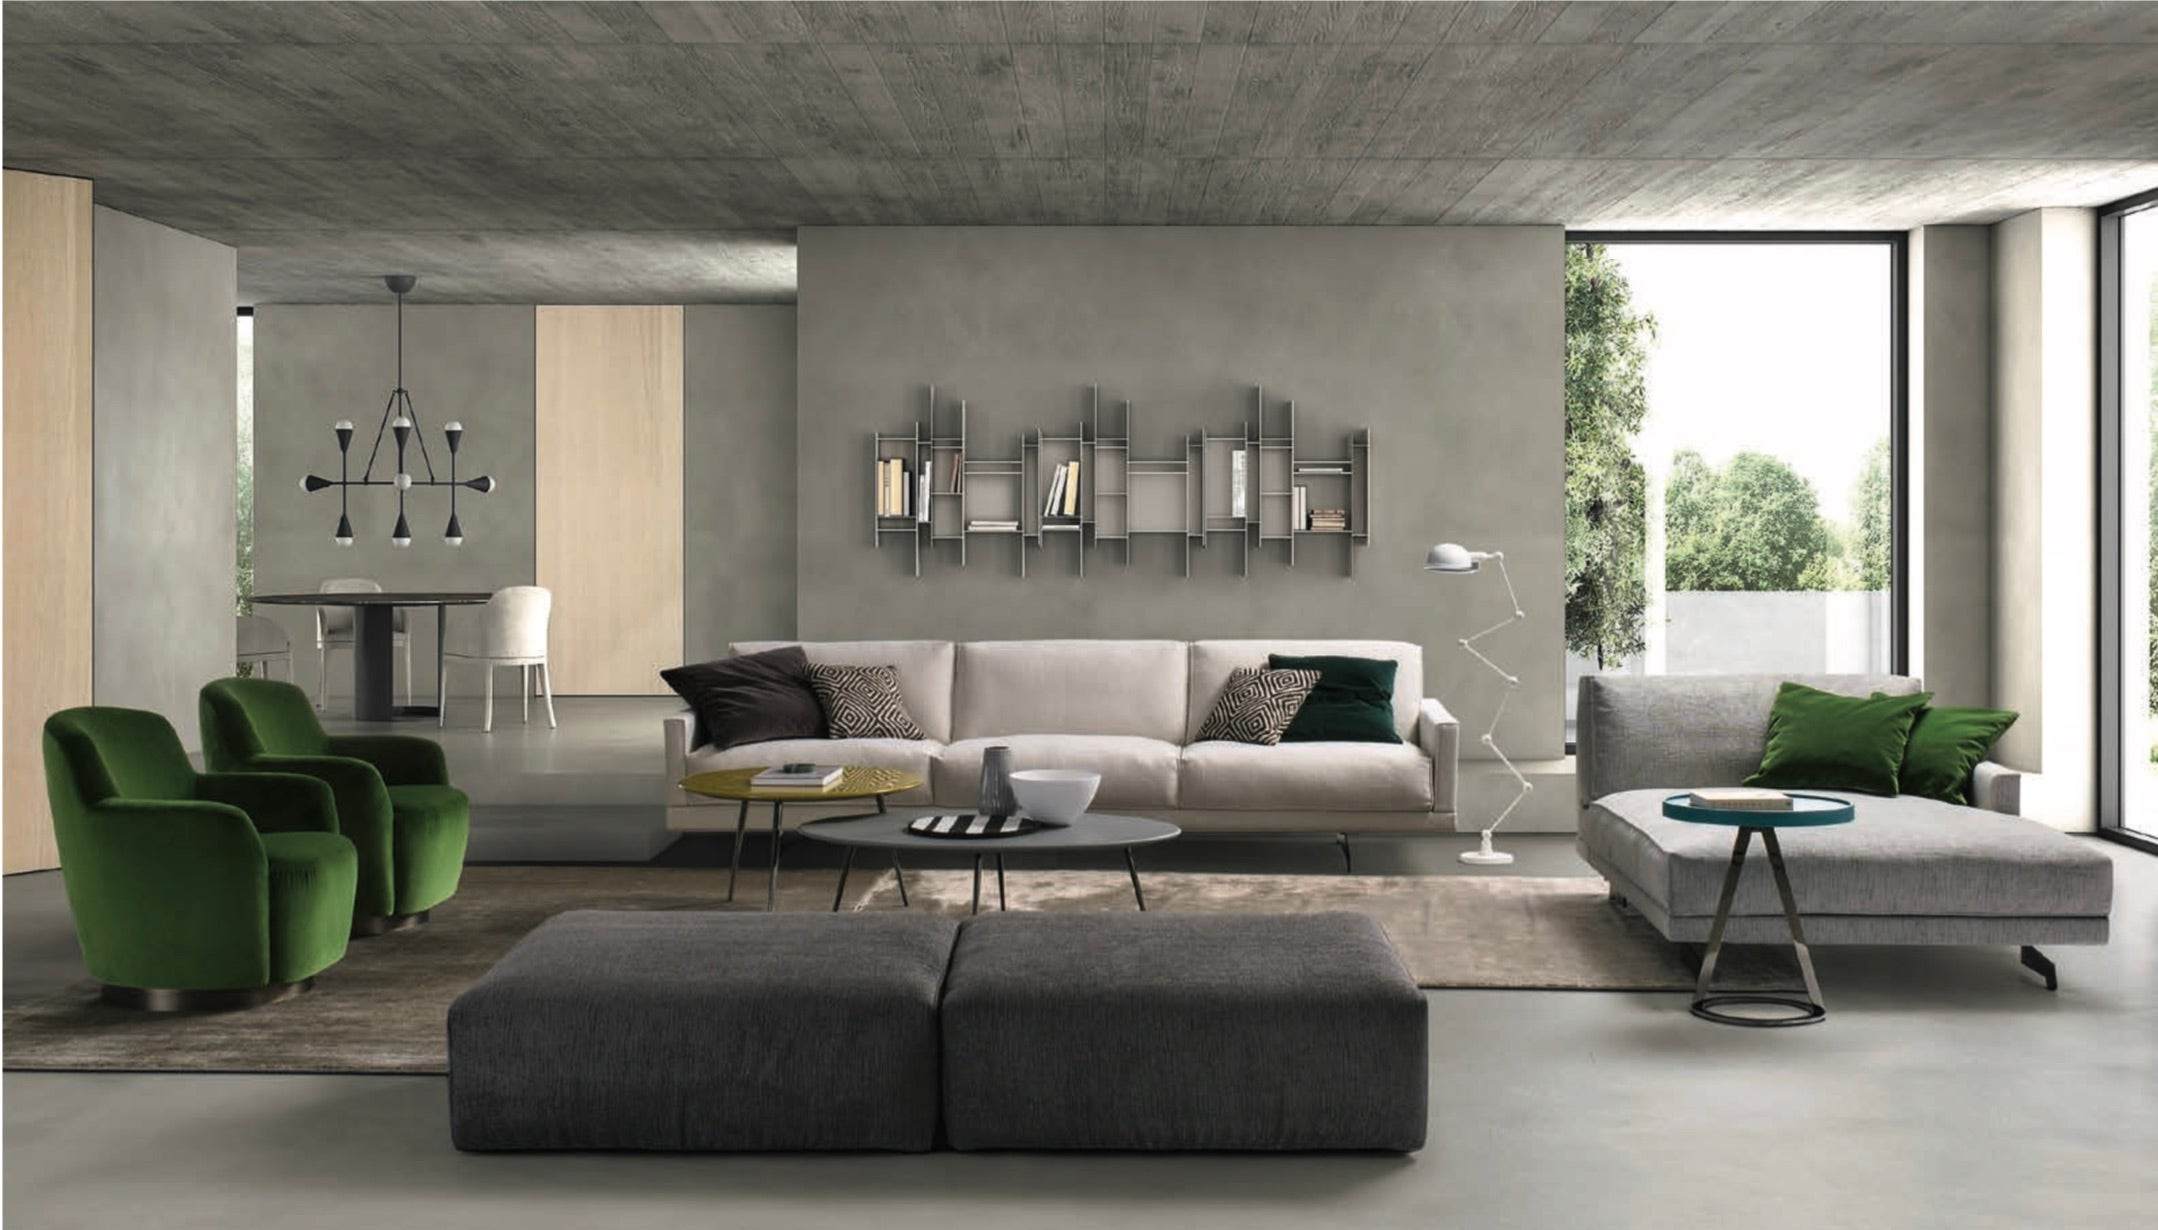 Italian Designer Sofa with Sculptural Arms Made in Italy, Fabric or Leather